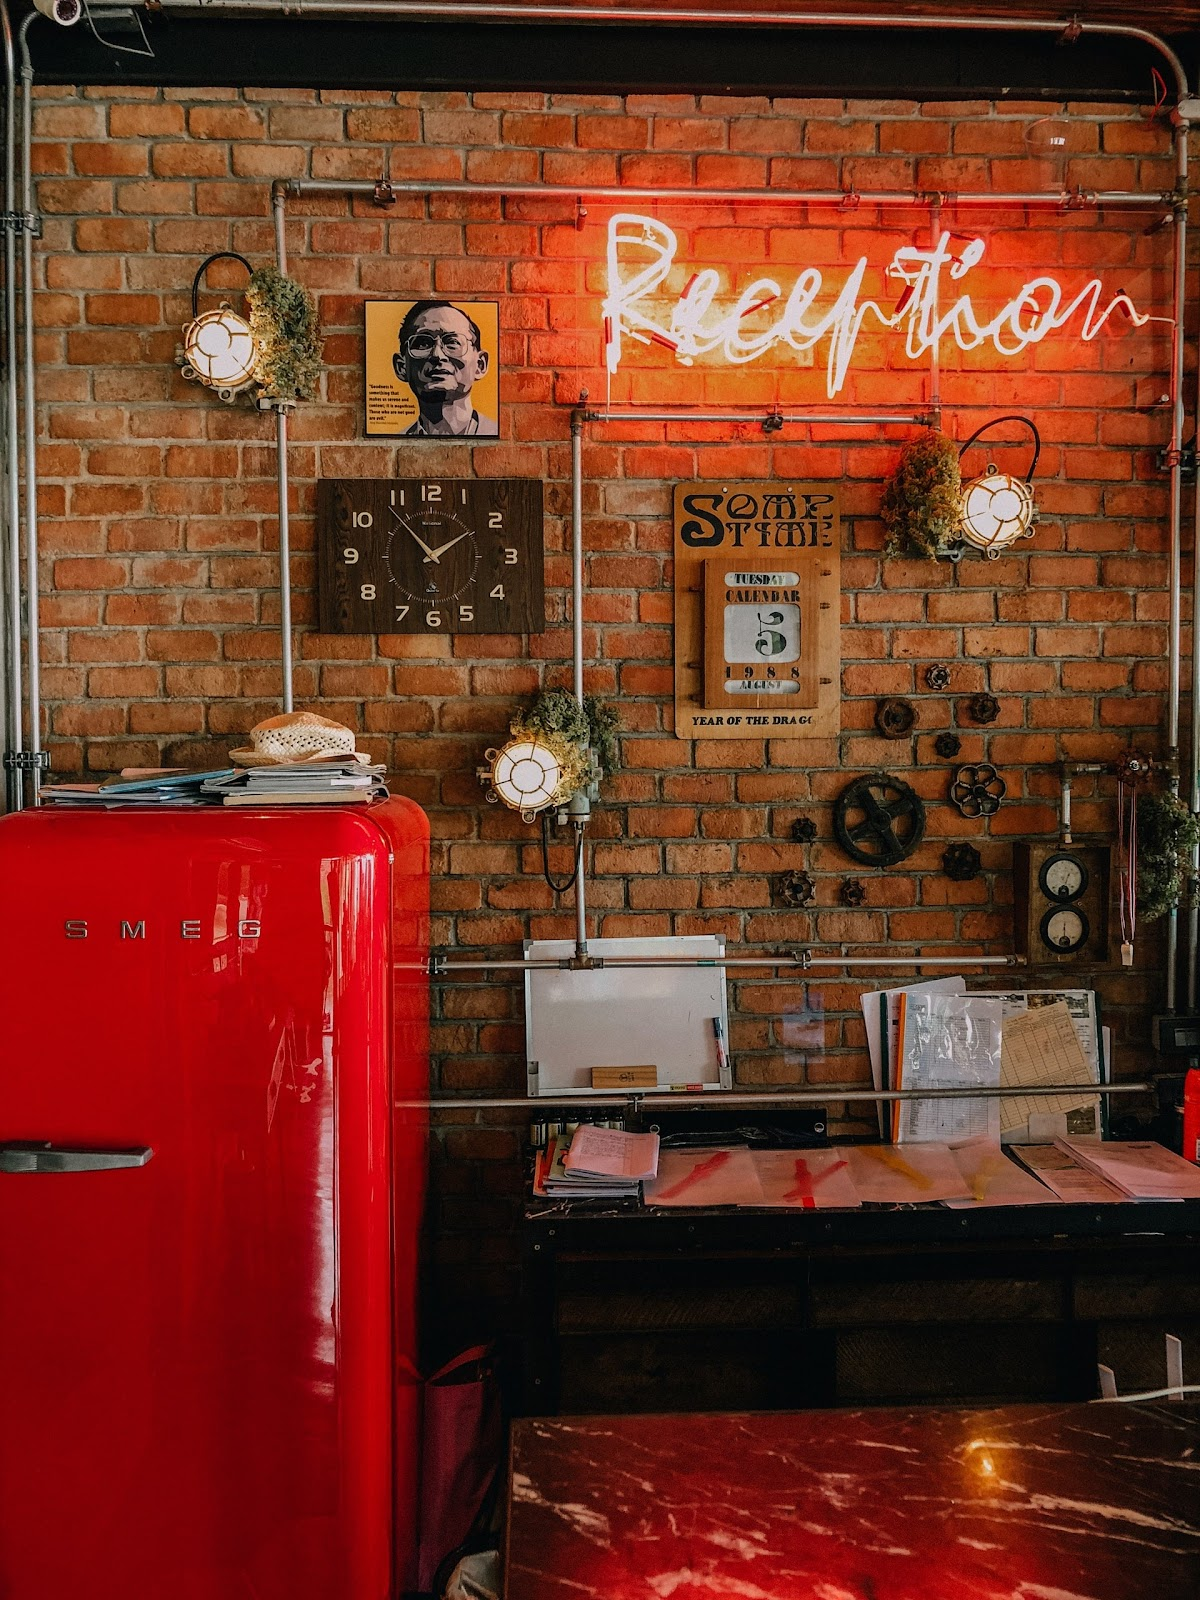 Retro appliances can instantly help in creating vintage kitchen designs; a bright red refrigerator placed in front of a brick wall decorated with bold artistic pieces